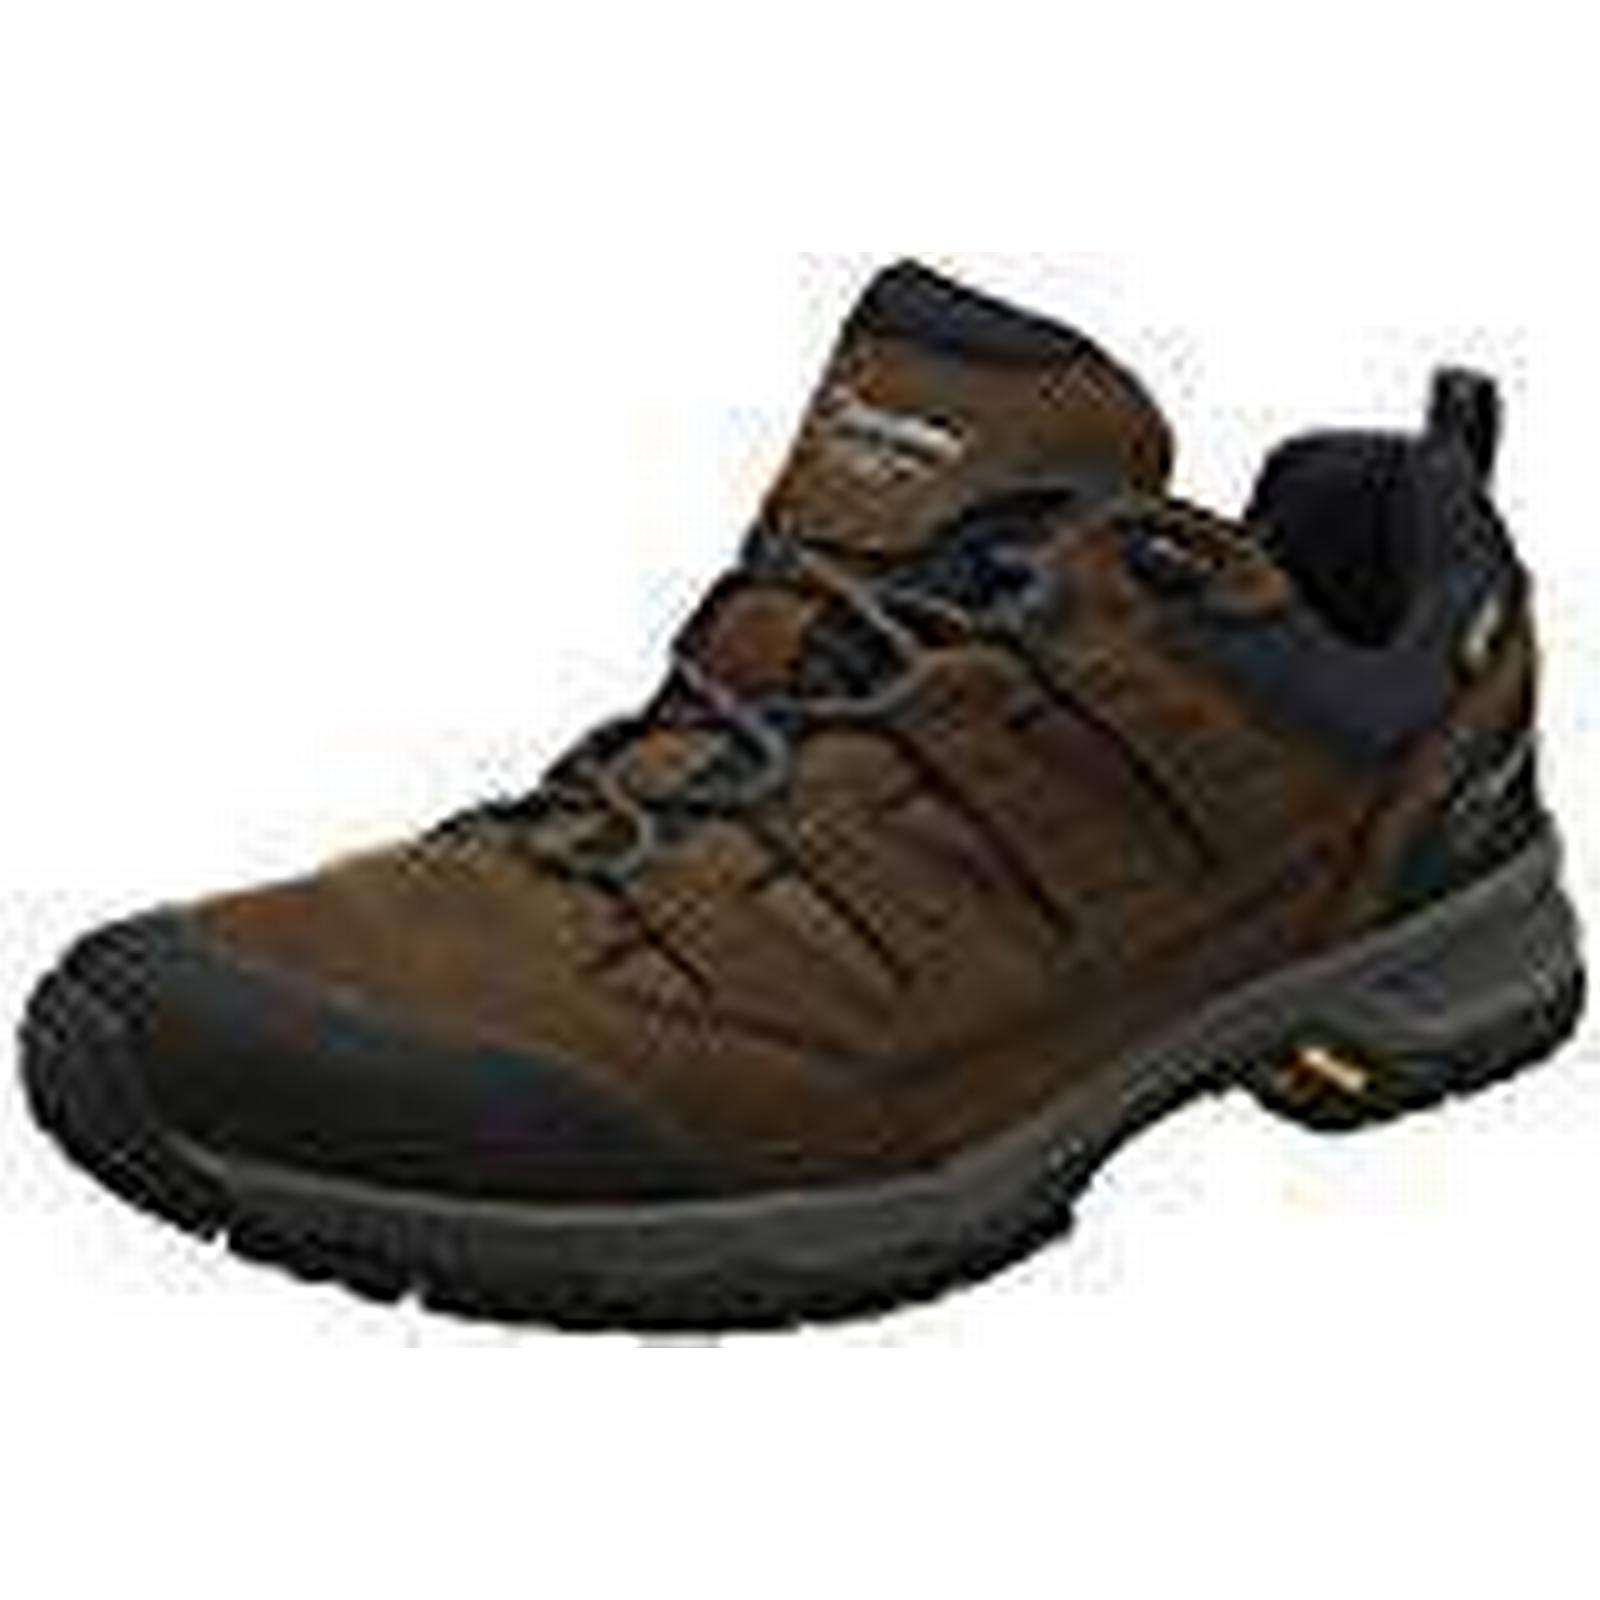 Berghaus Men's Fellmaster Low Active Gore-Tex Walking Shoes Low Fellmaster Rise Hiking Boots, (Brown/Burnt Orange X11), 8 UK 42 EU 656987